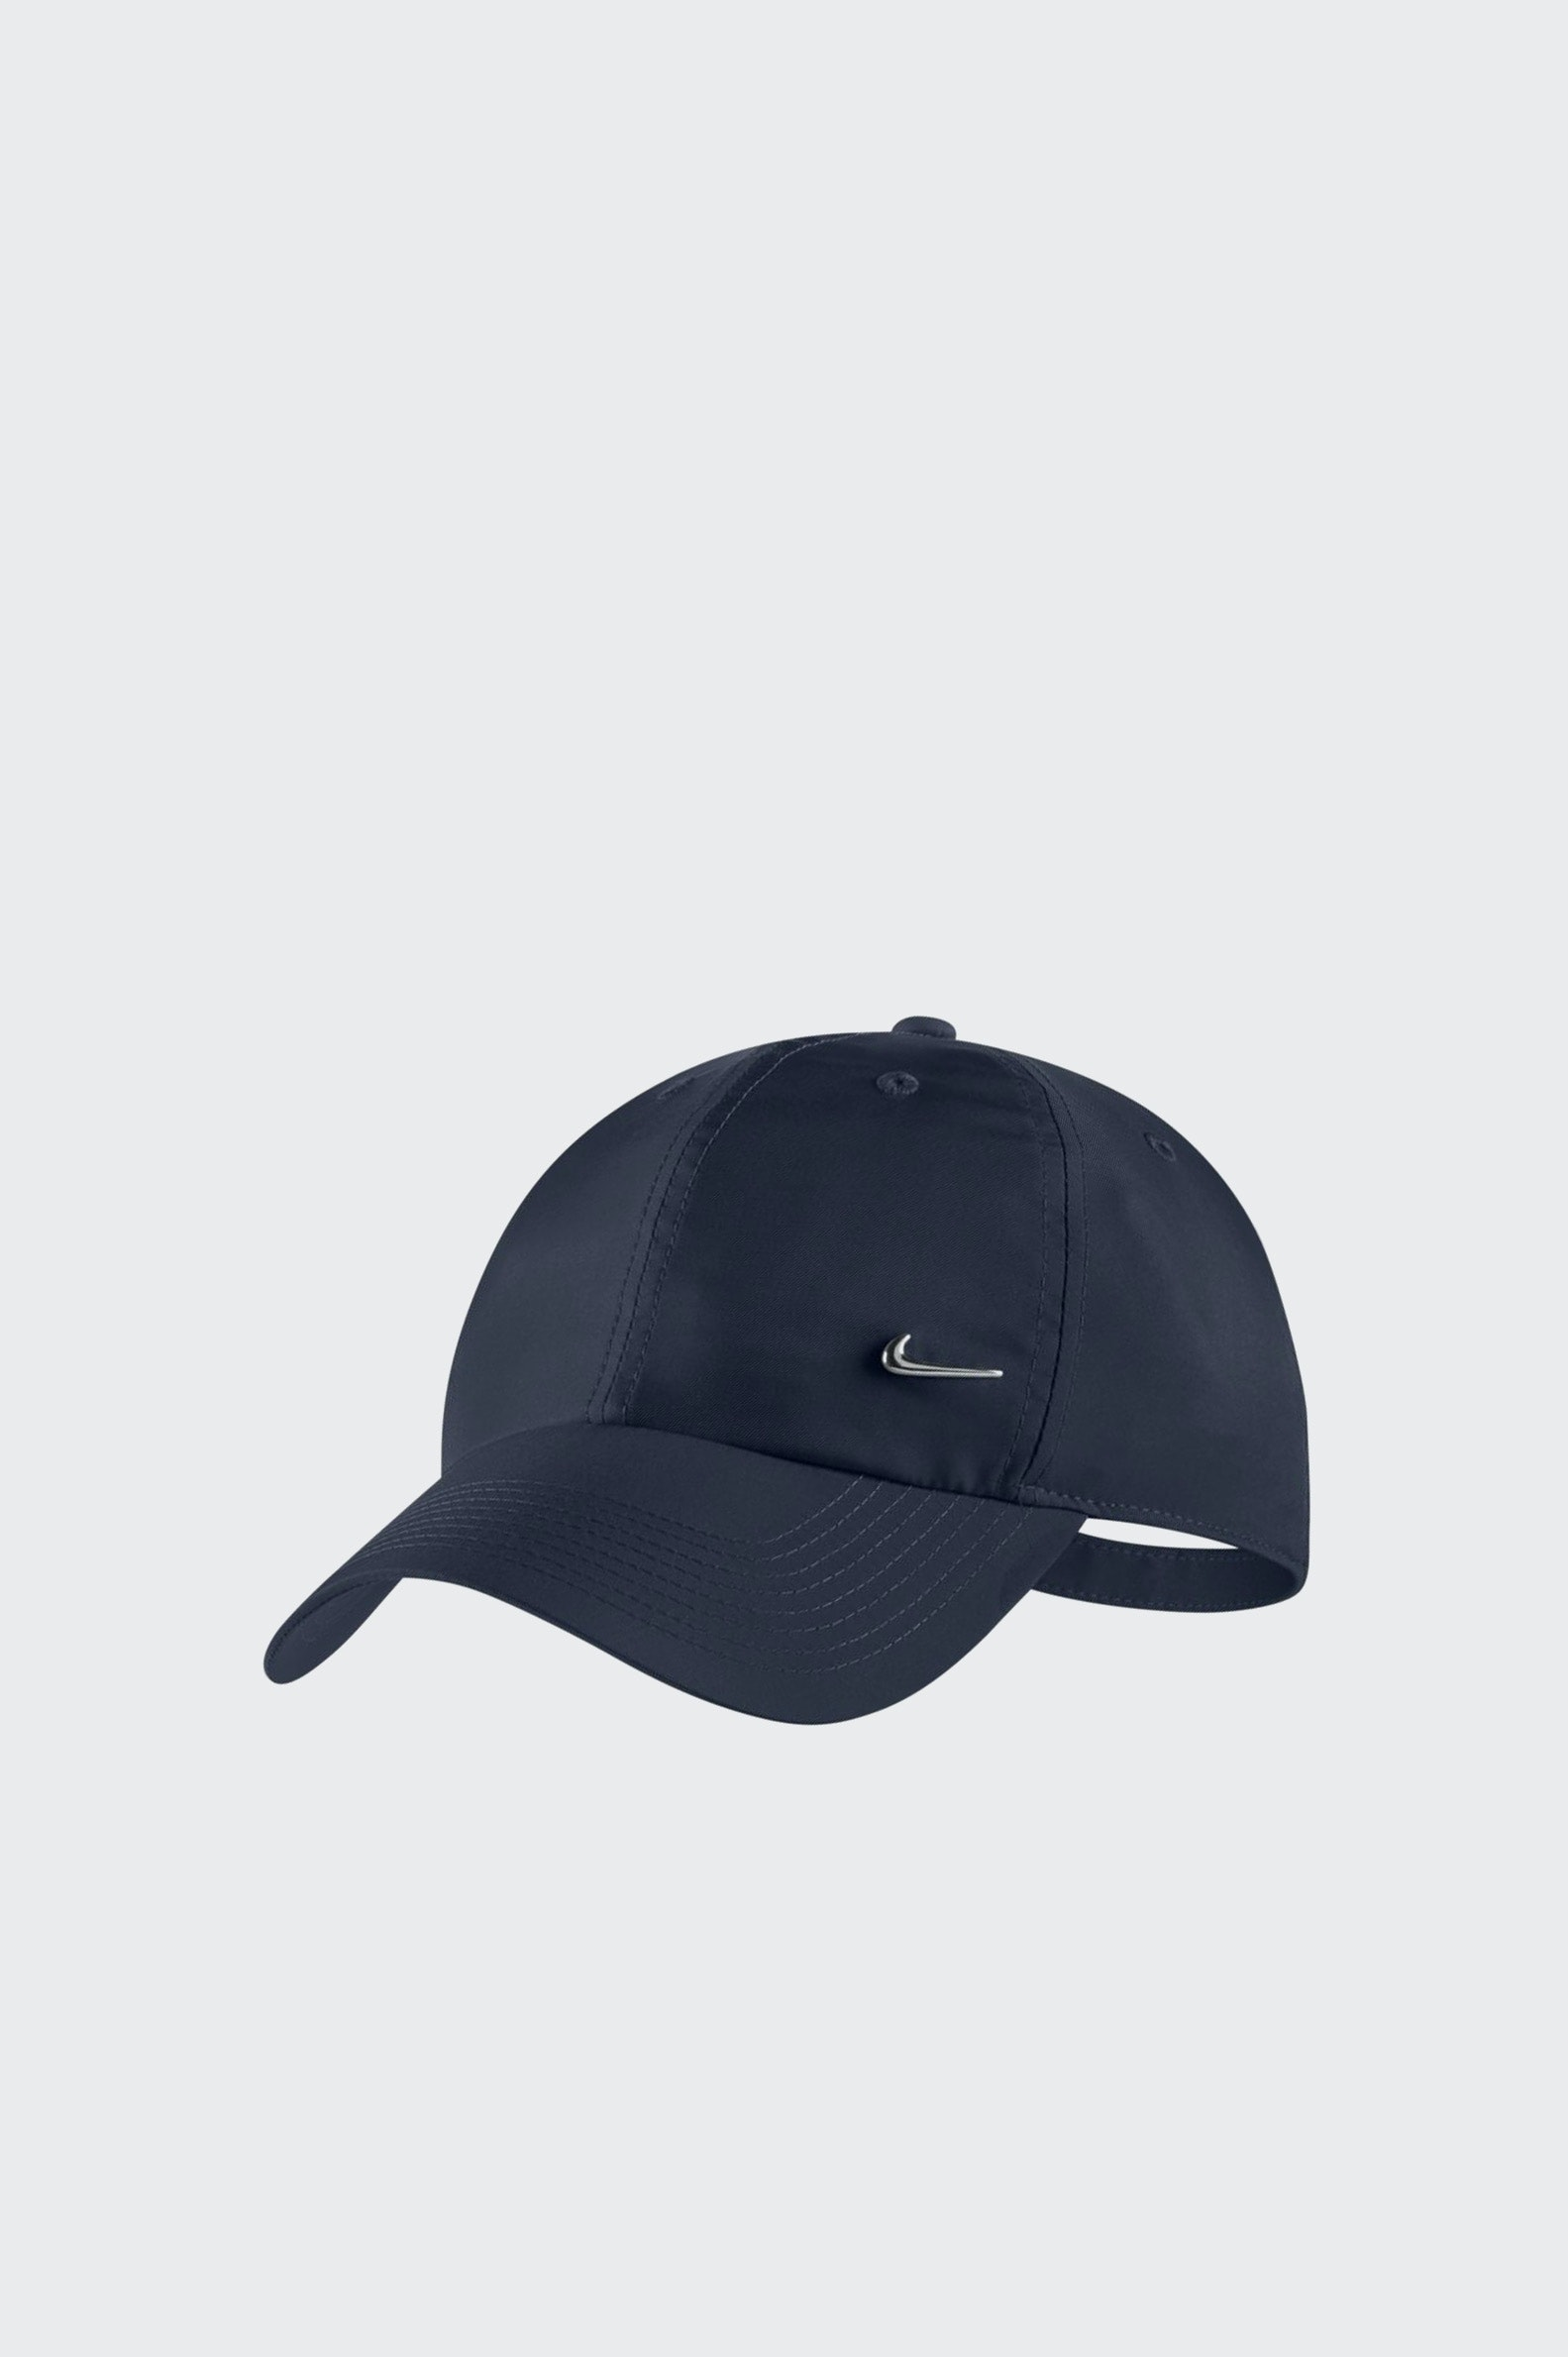 CASQUETTE MODE NIKE H86 HOMME